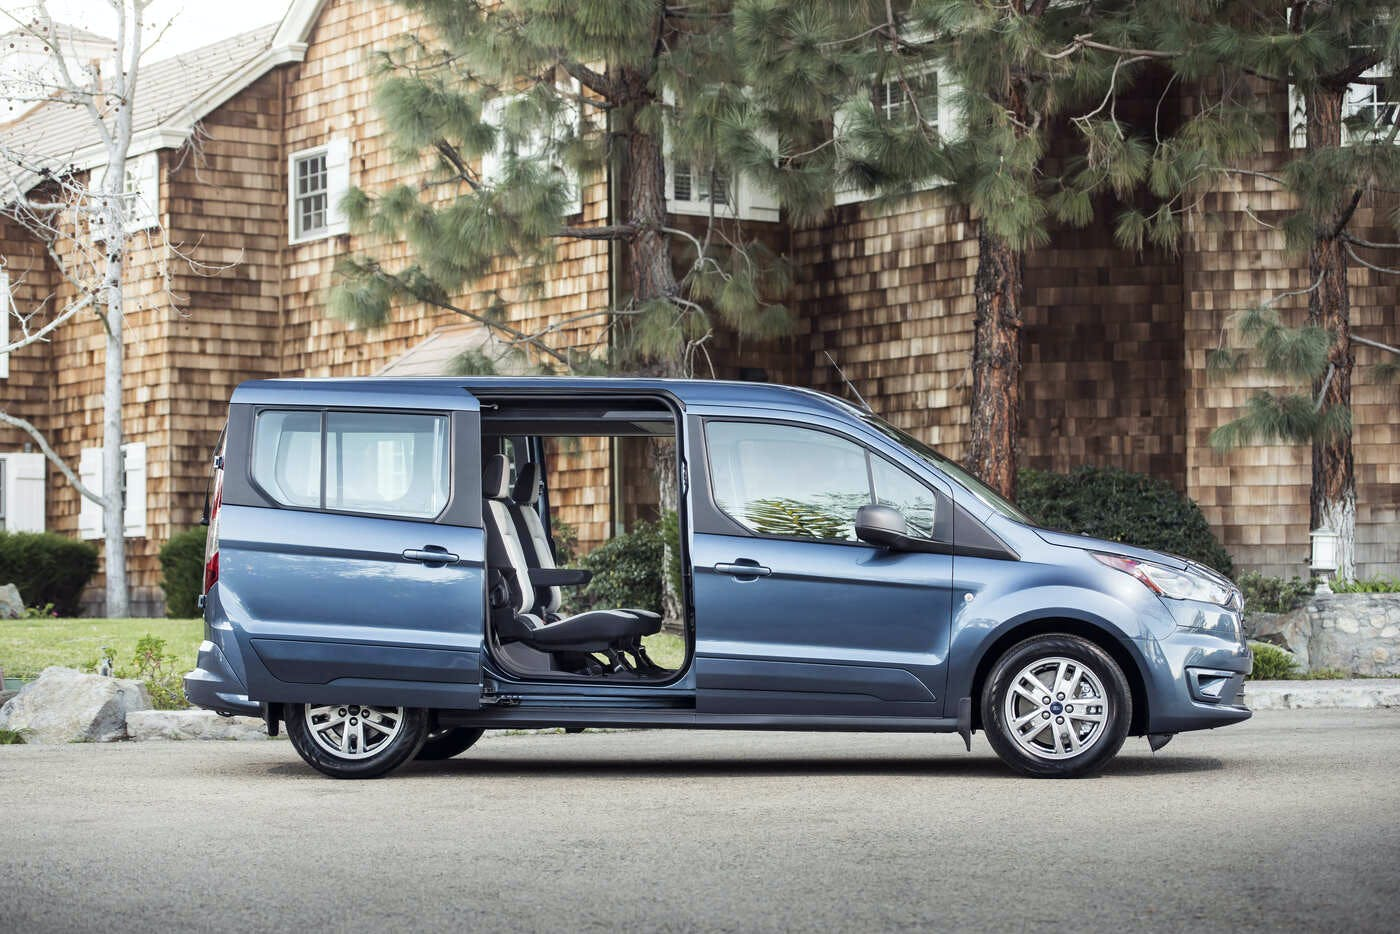 2020 ford transit connect wagon reviews pricing pictures truecar 2020 ford transit connect wagon reviews